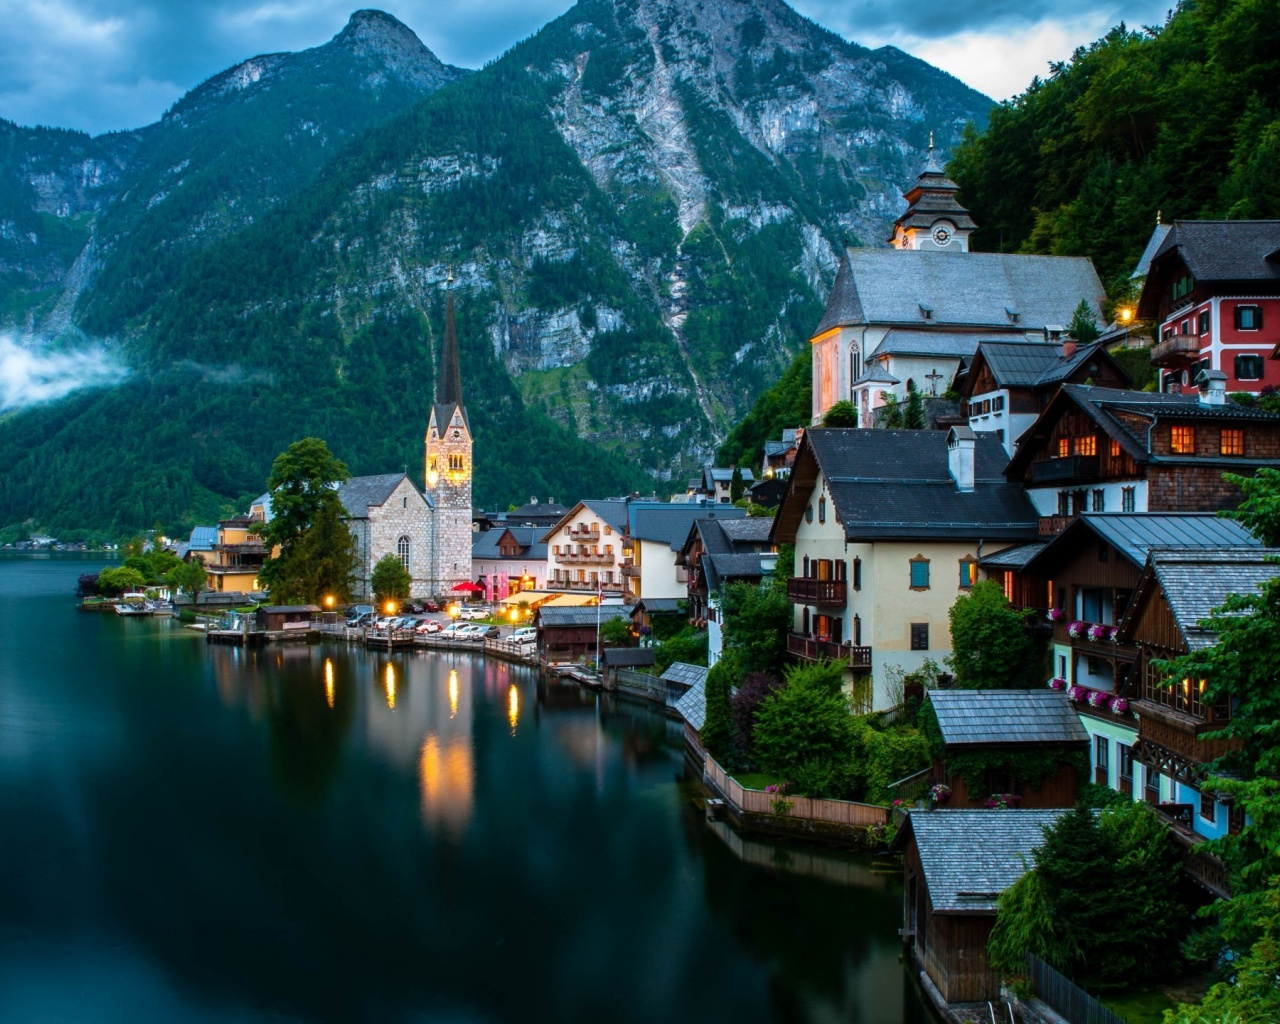 1280x1024 hallstatt austria desktop pc and mac wallpaper